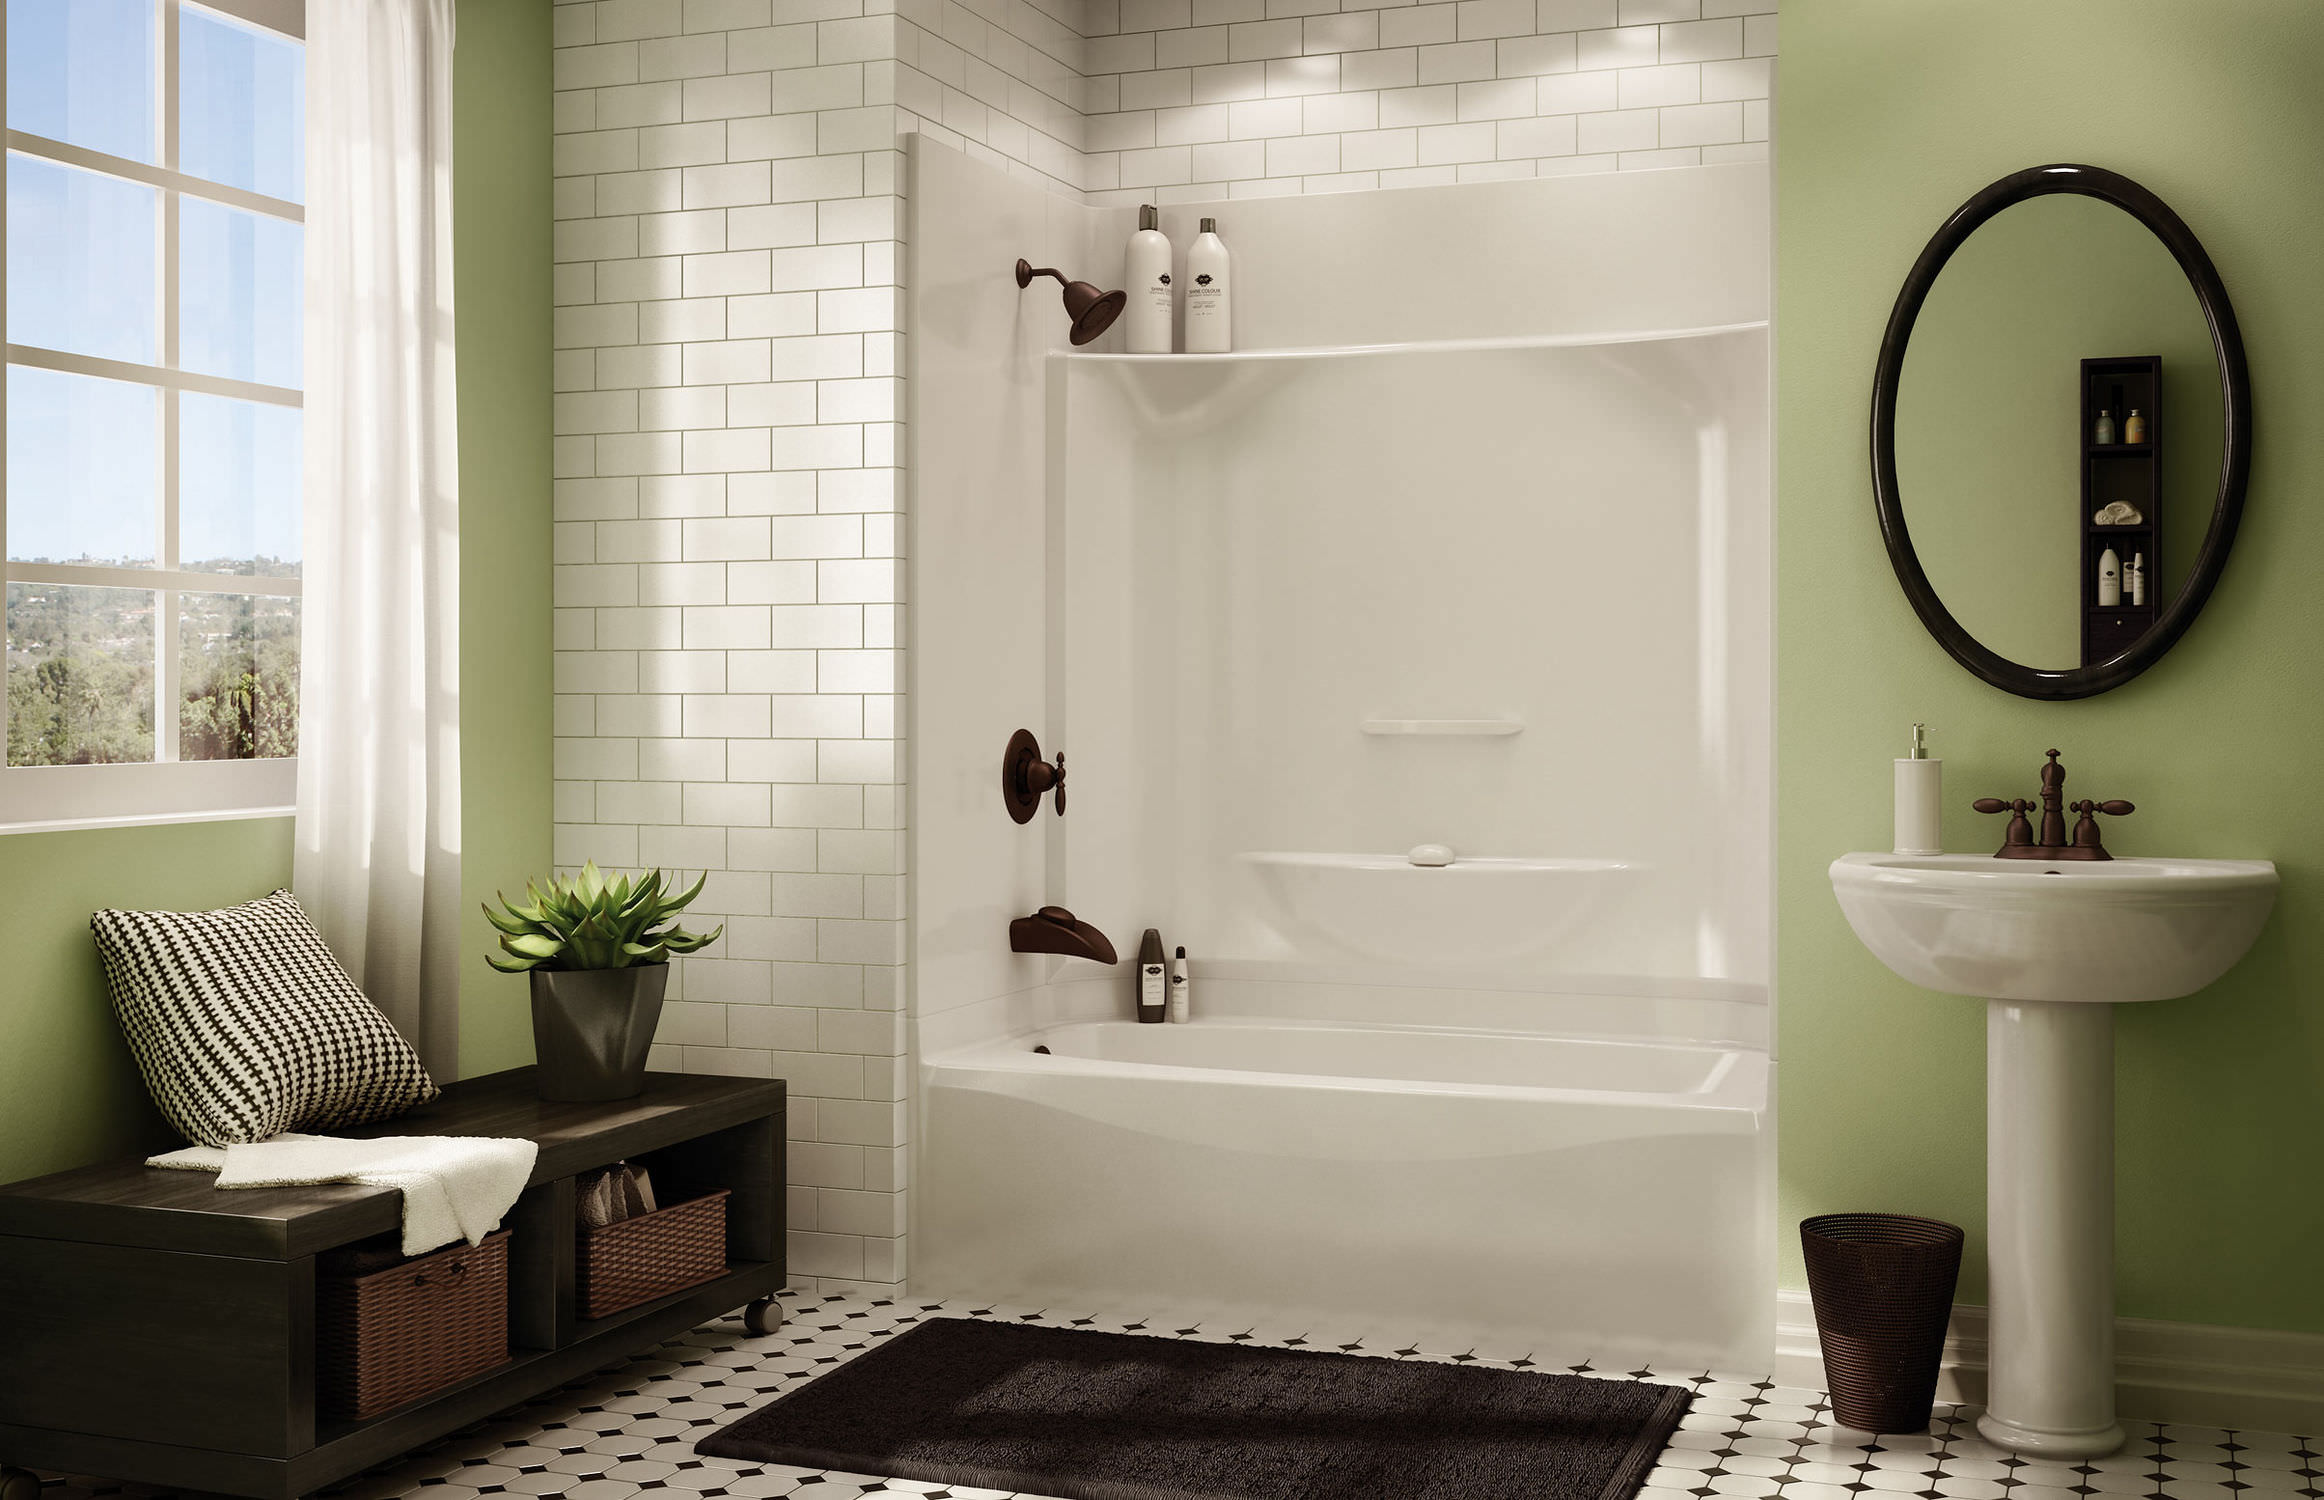 Indulging Shower Combo Menards Bath Shower Combo Small Bathrooms Combination Rectangular Acrylic Kdts Combination Rectangular Acrylic Kdts Tub houzz-03 Tub And Shower Combo